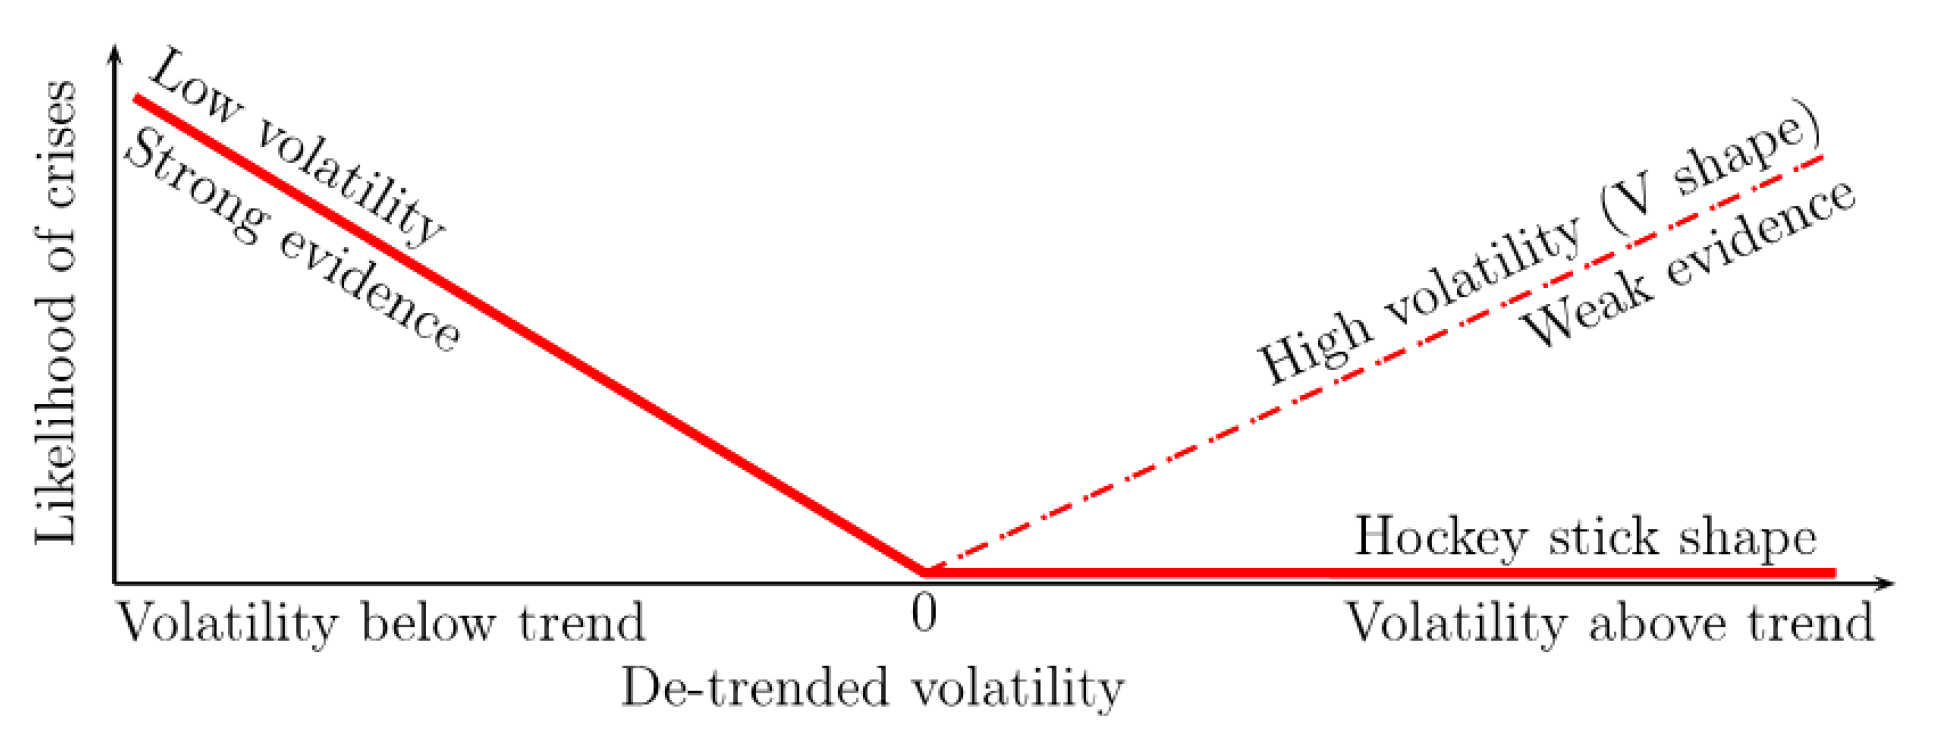 Figure 3. Low and high volatilities as predictors of crises. See accessible link for data description.